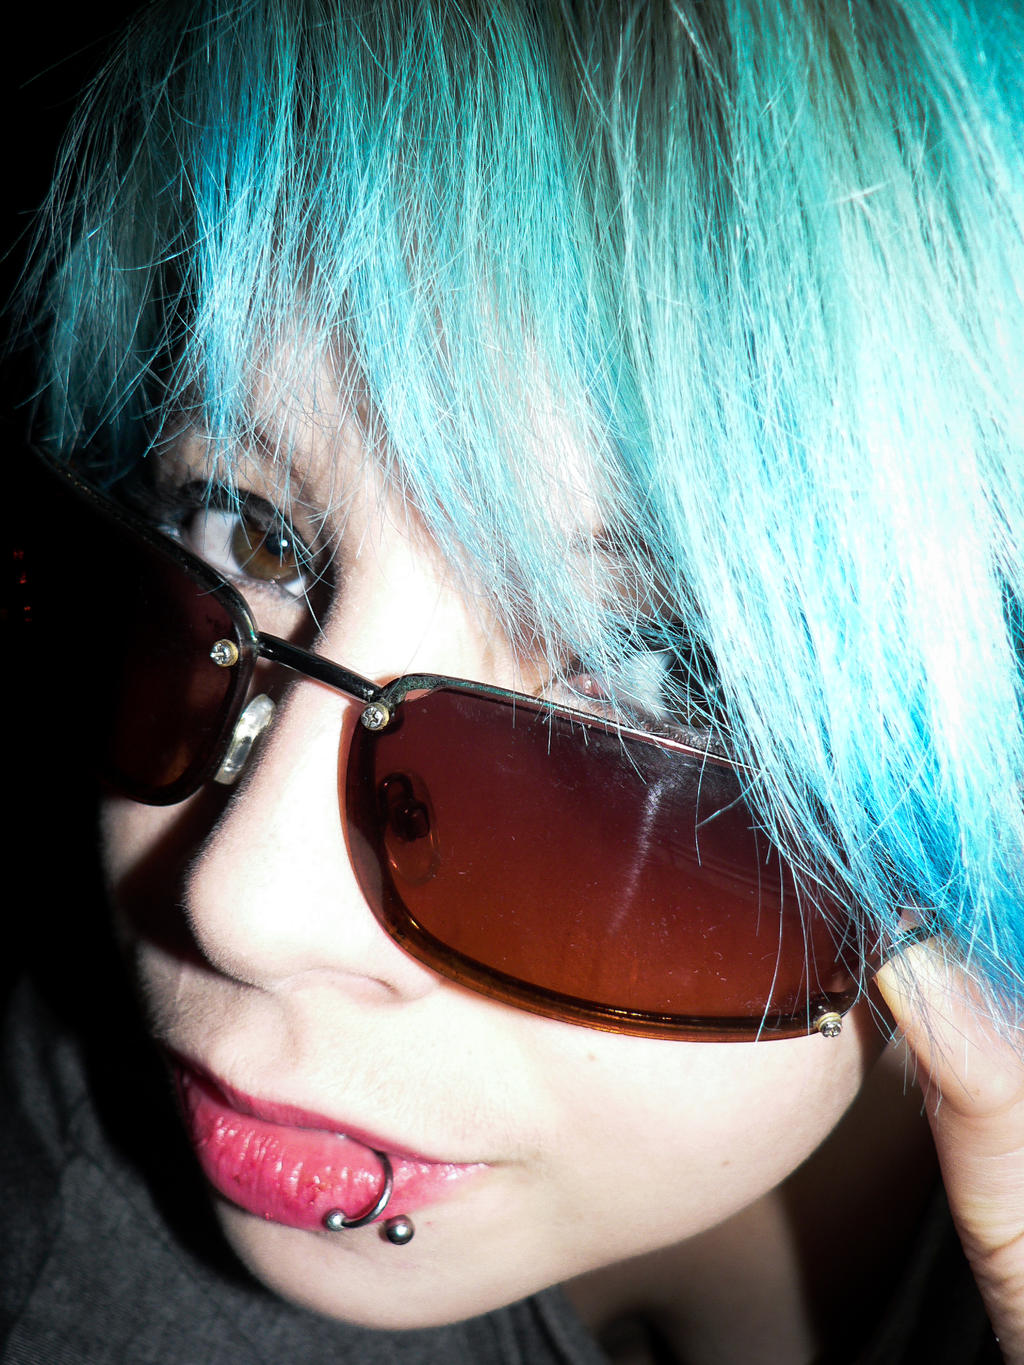 Yami-Oscuridad's Profile Picture